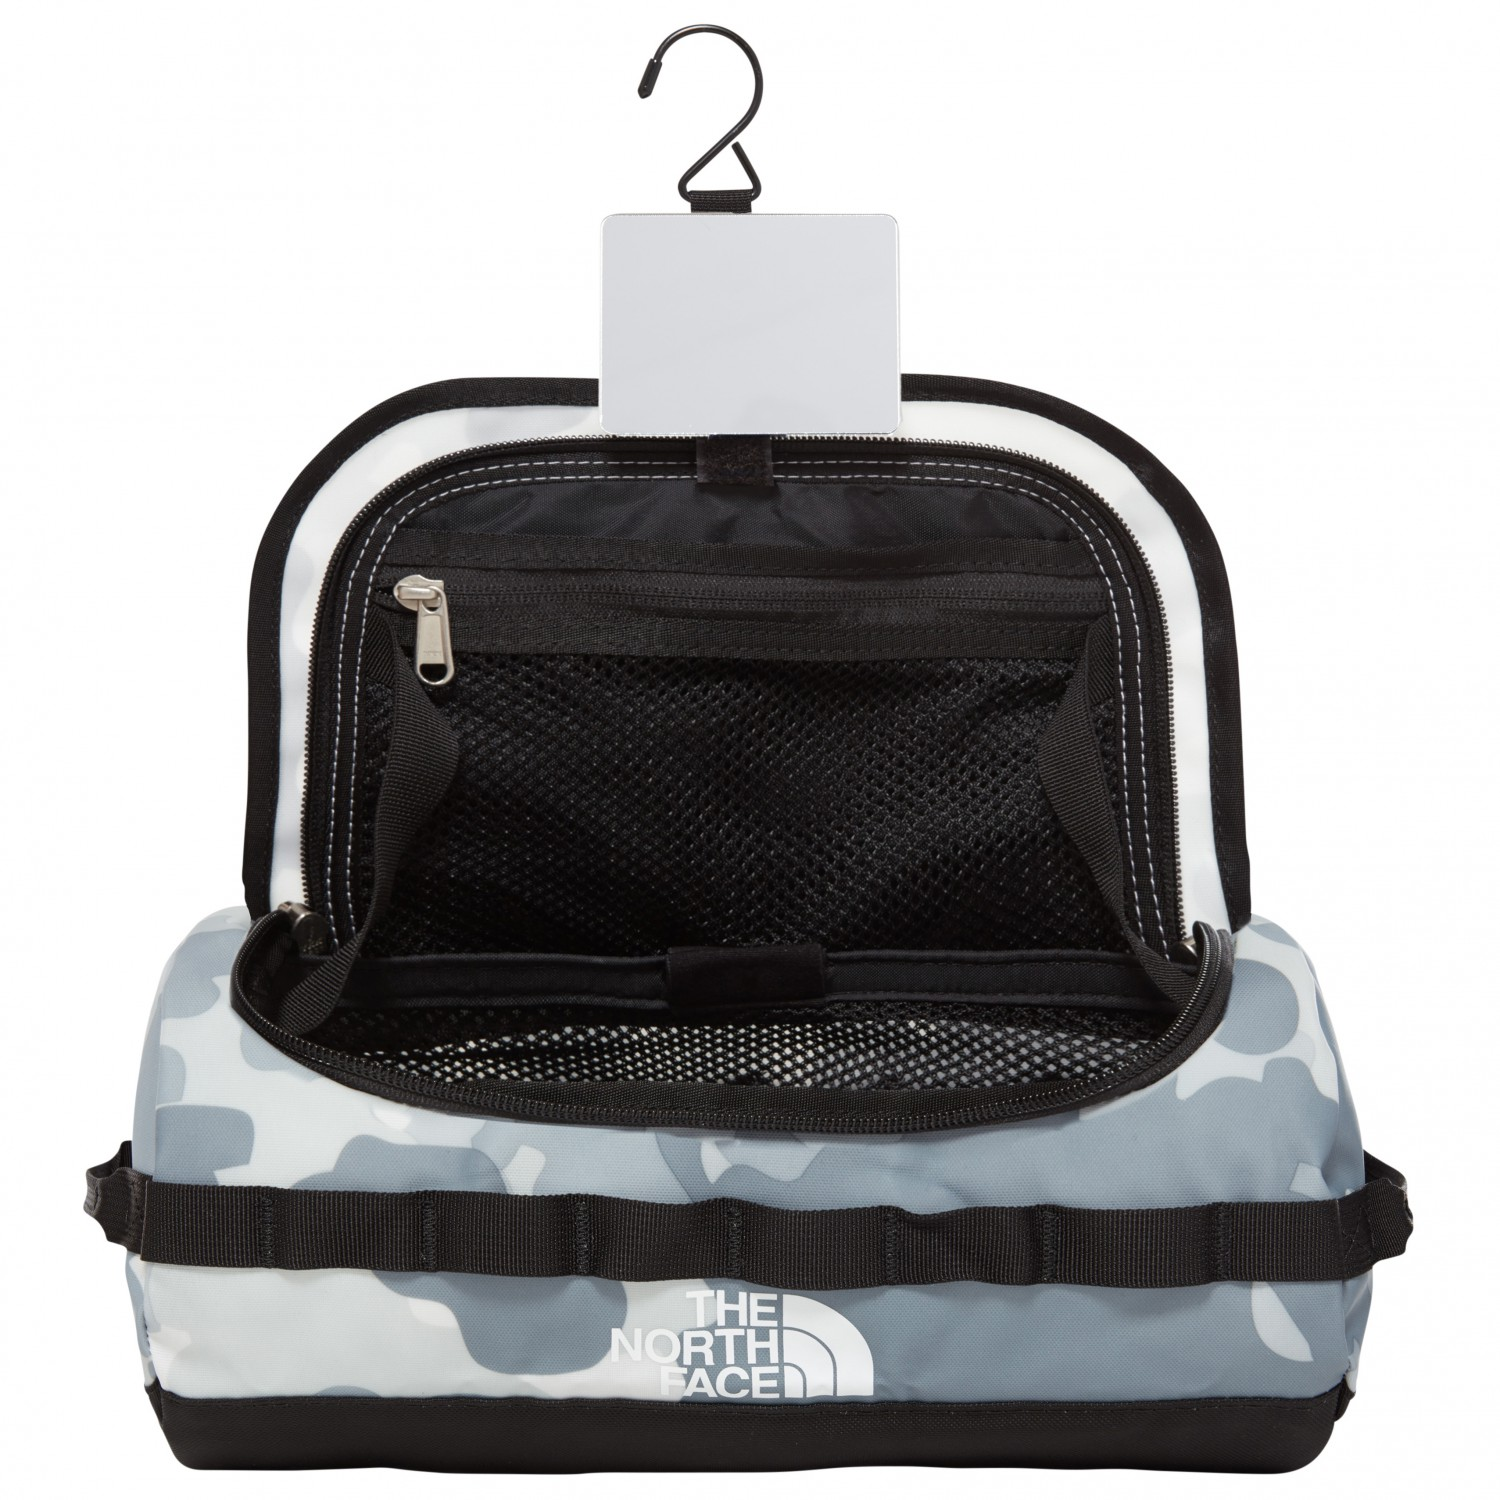 f329595a9 The North Face BC Travel Canister L - Wash Bag | Buy online ...